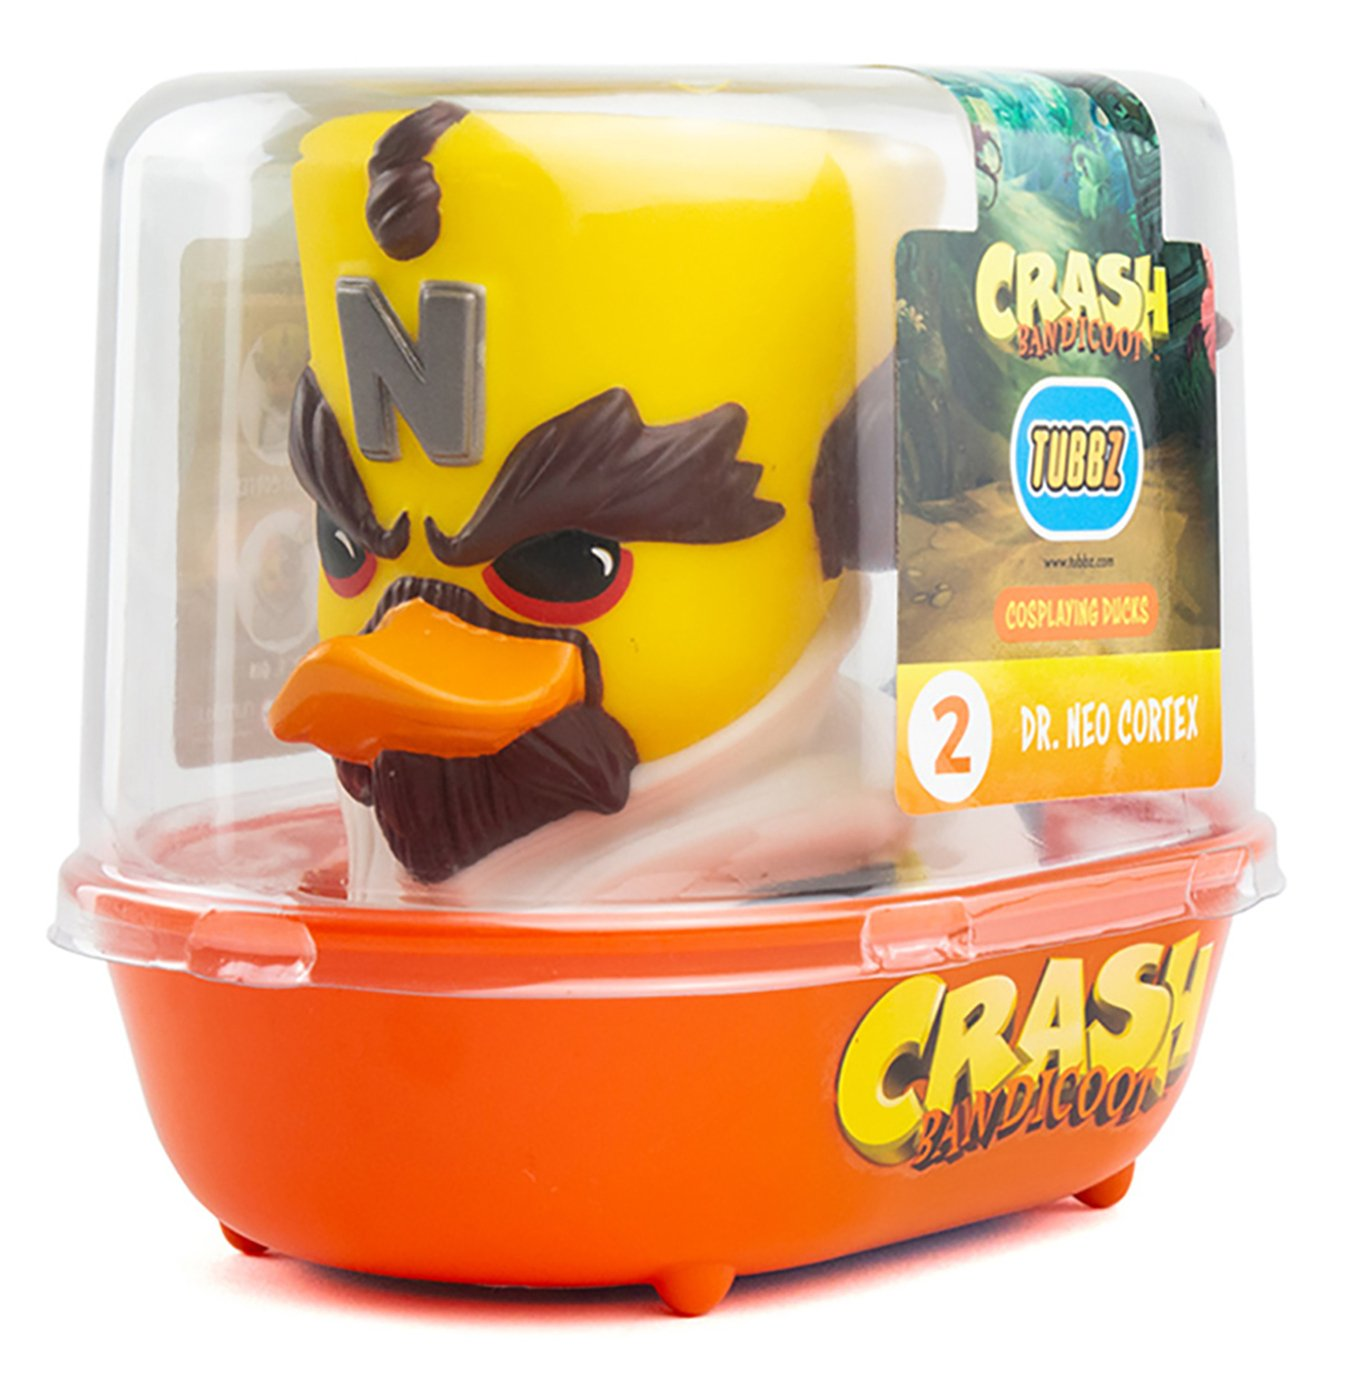 Tubbz Collectable Crash Bandicoot Rubber Duck - Dr Cortex